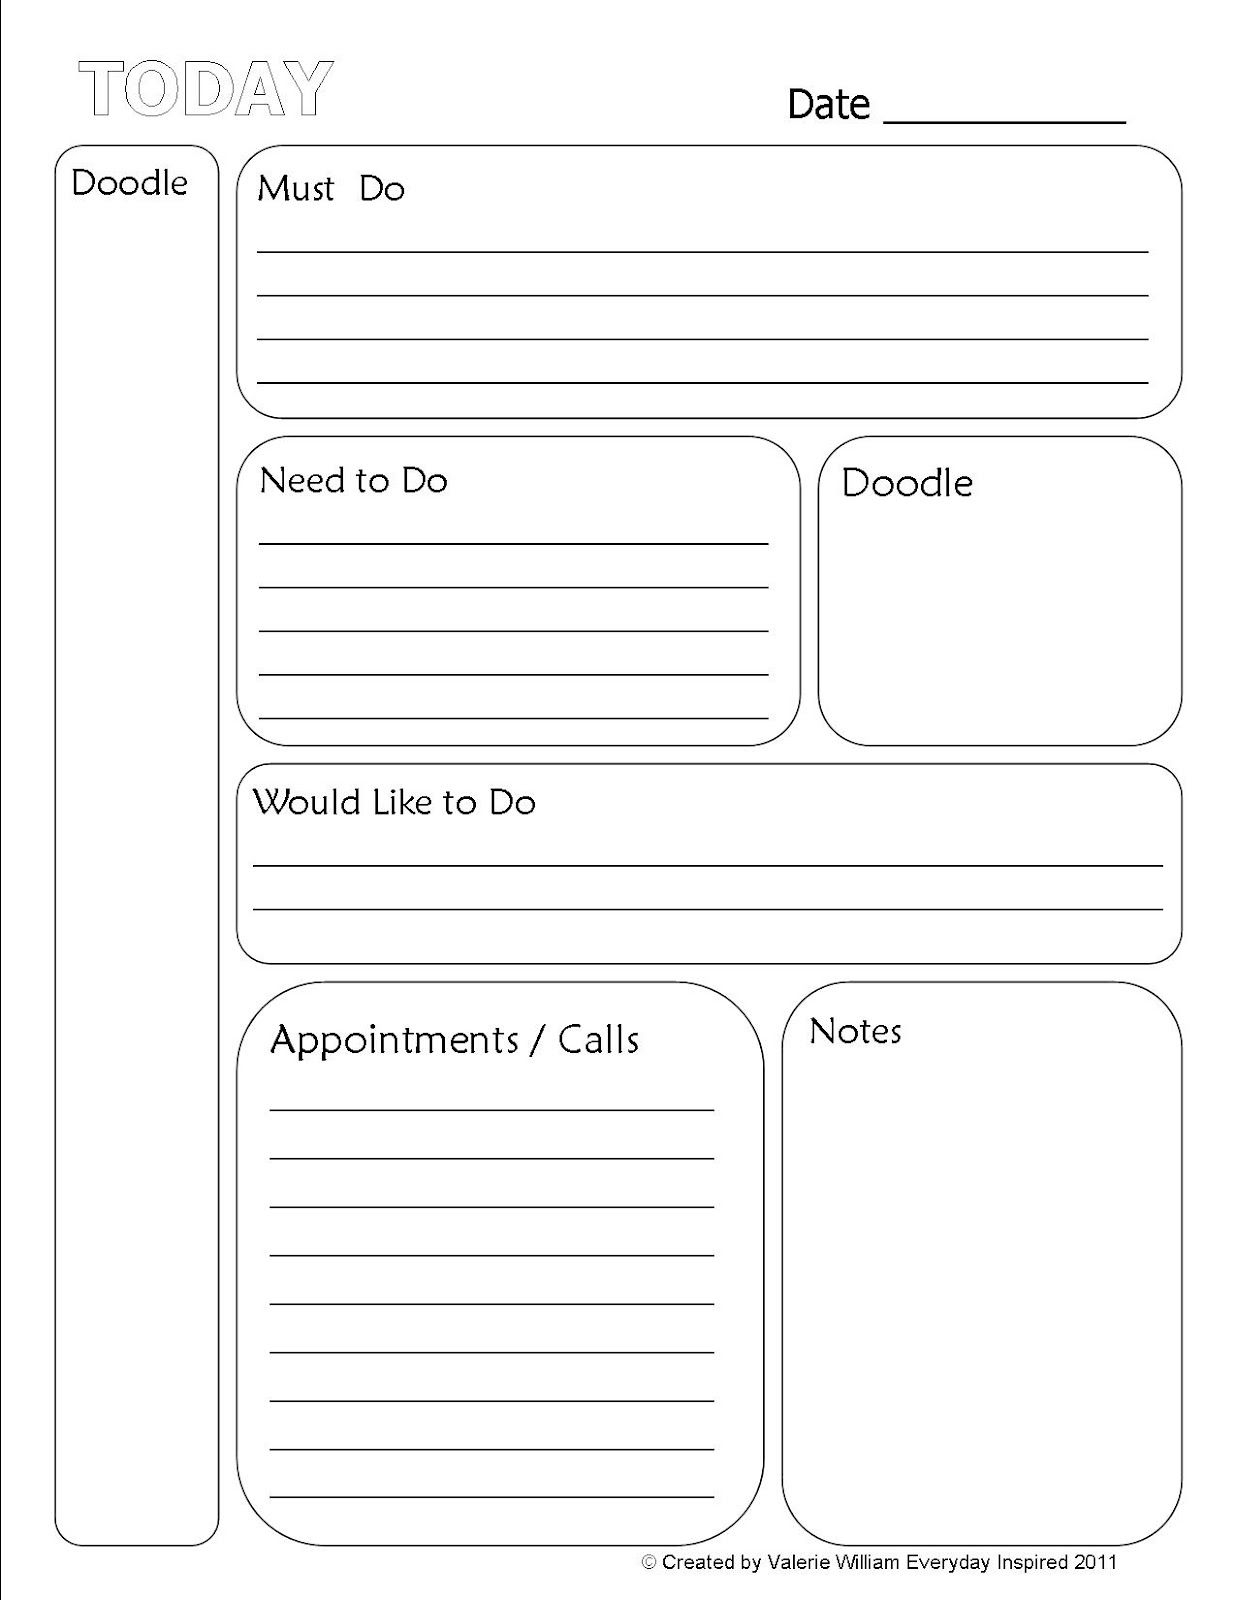 Free To Do List | Printable To-Do List | Planner Addict - Free Printable To Do List Planner